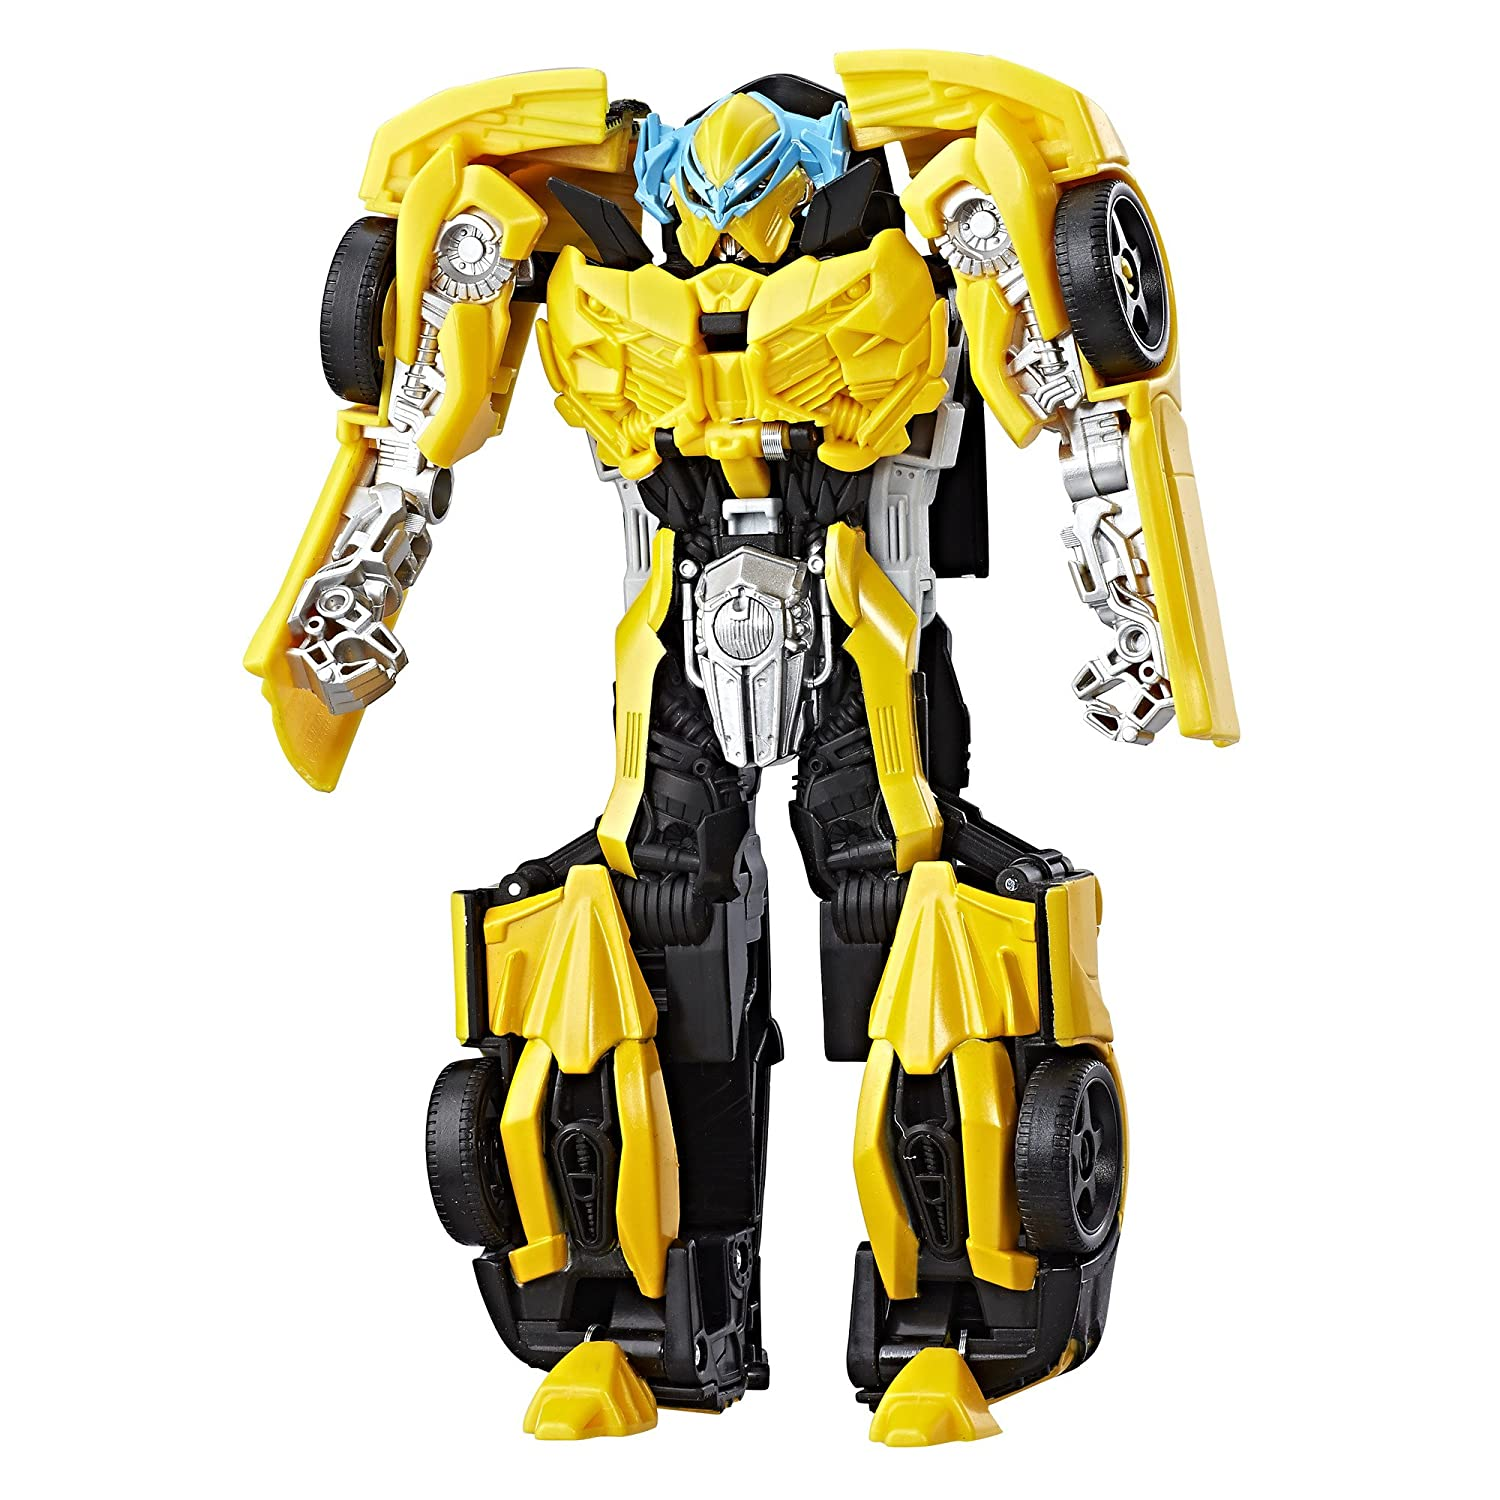 Transformers: The Last Knight -- Knight Armor Turbo Changer Bumblebee Hasbro C0886